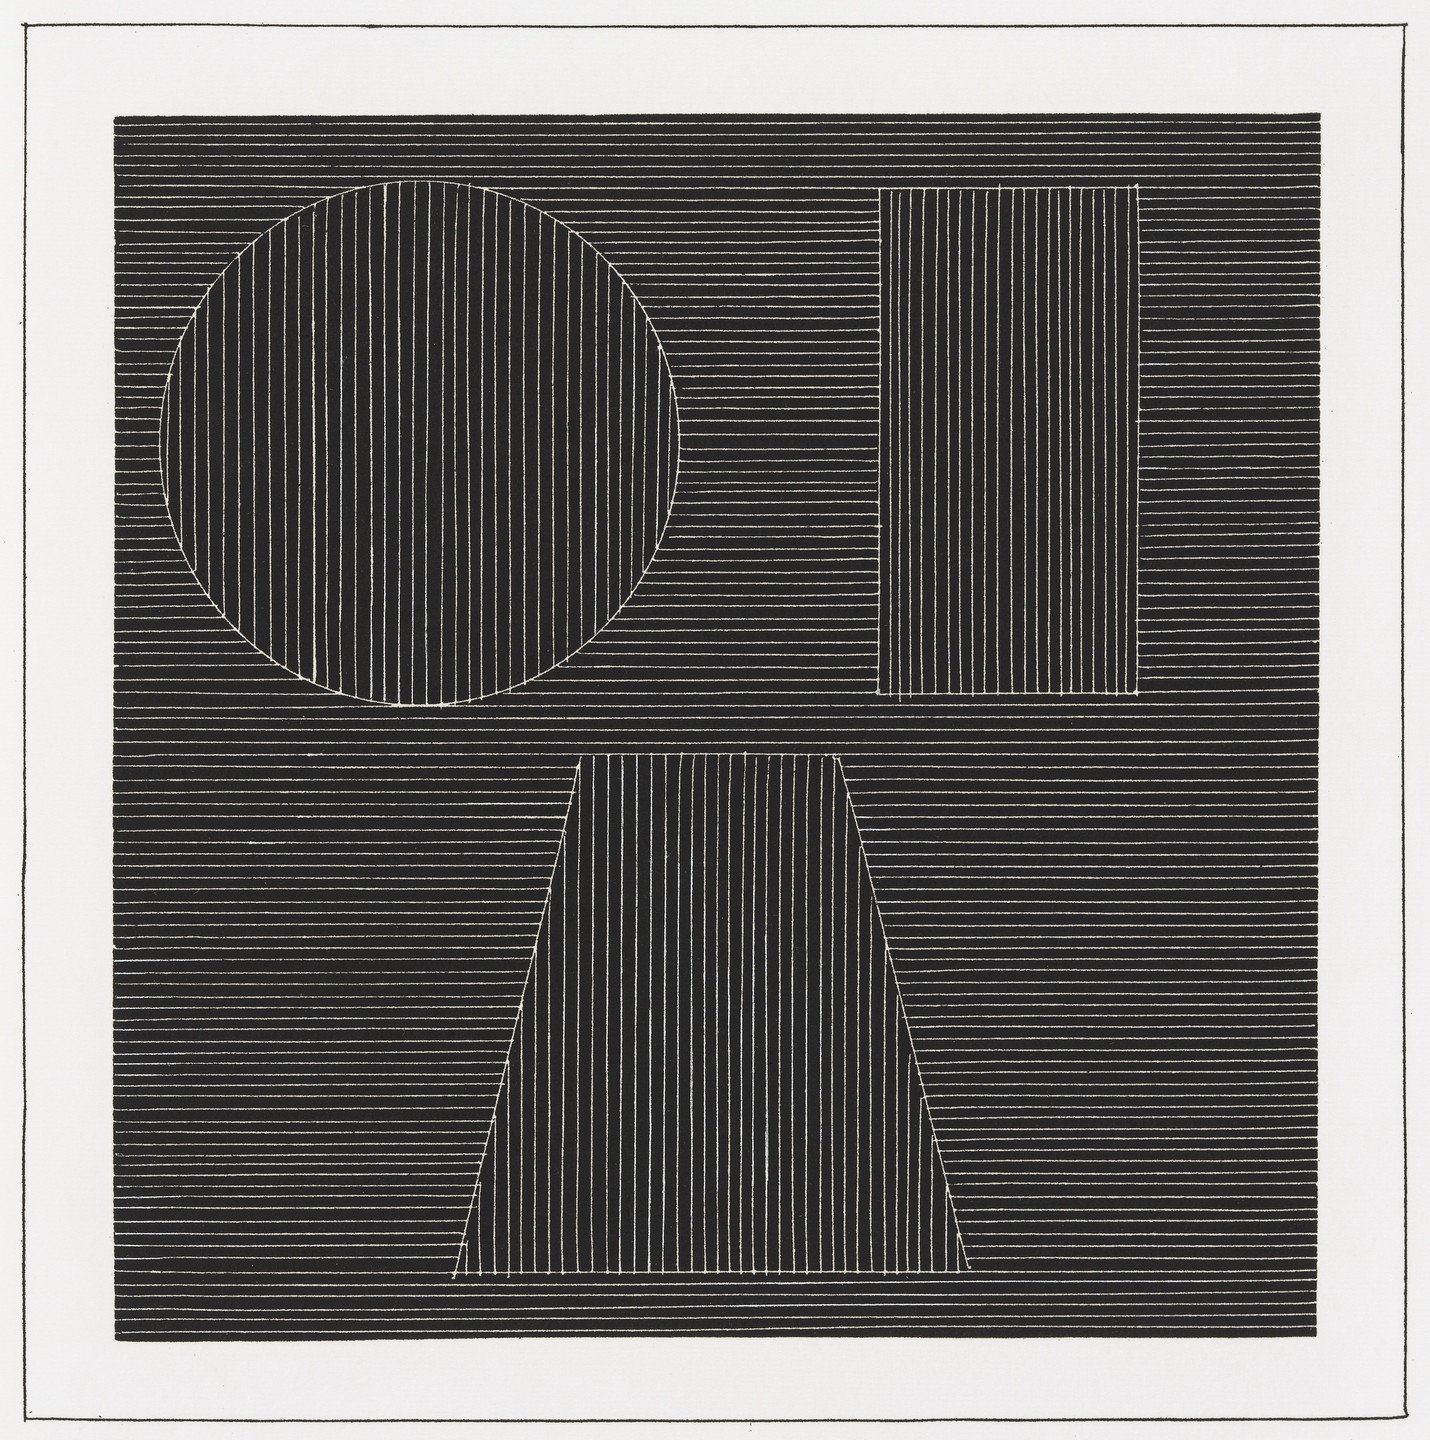 Sol LeWitt. Plate (folio 36) from Six Geometric Figures and All Their Combinations, Volume I. 1980